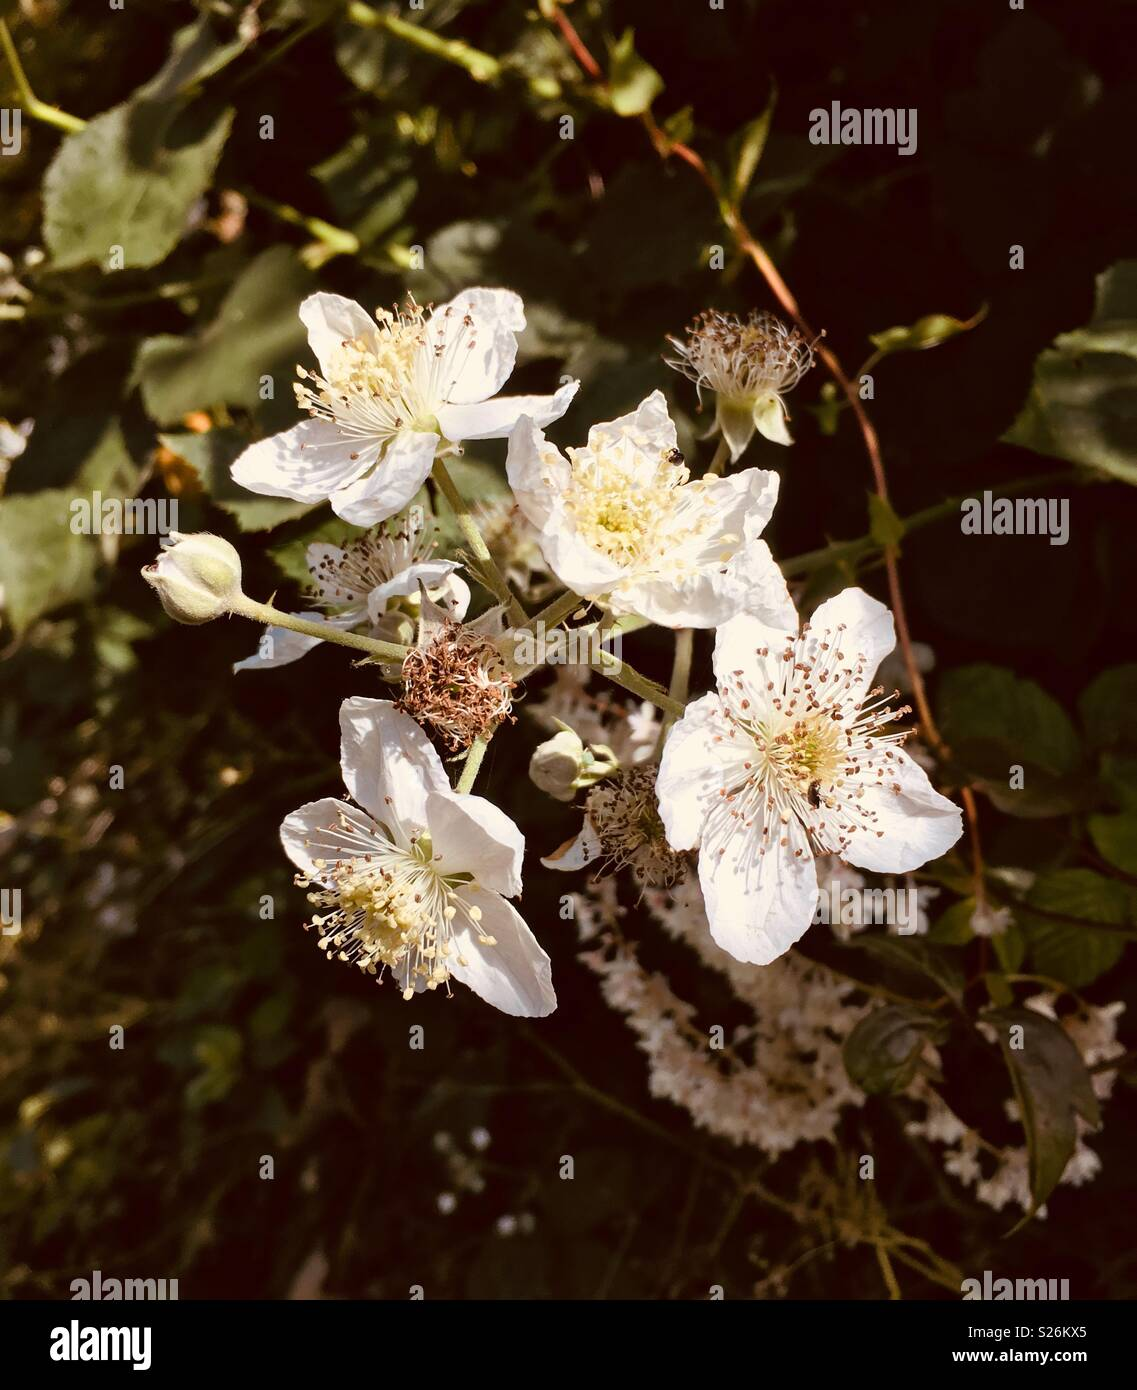 White Hawthorn Flowers Against A Background Of Leaves Stock Photo